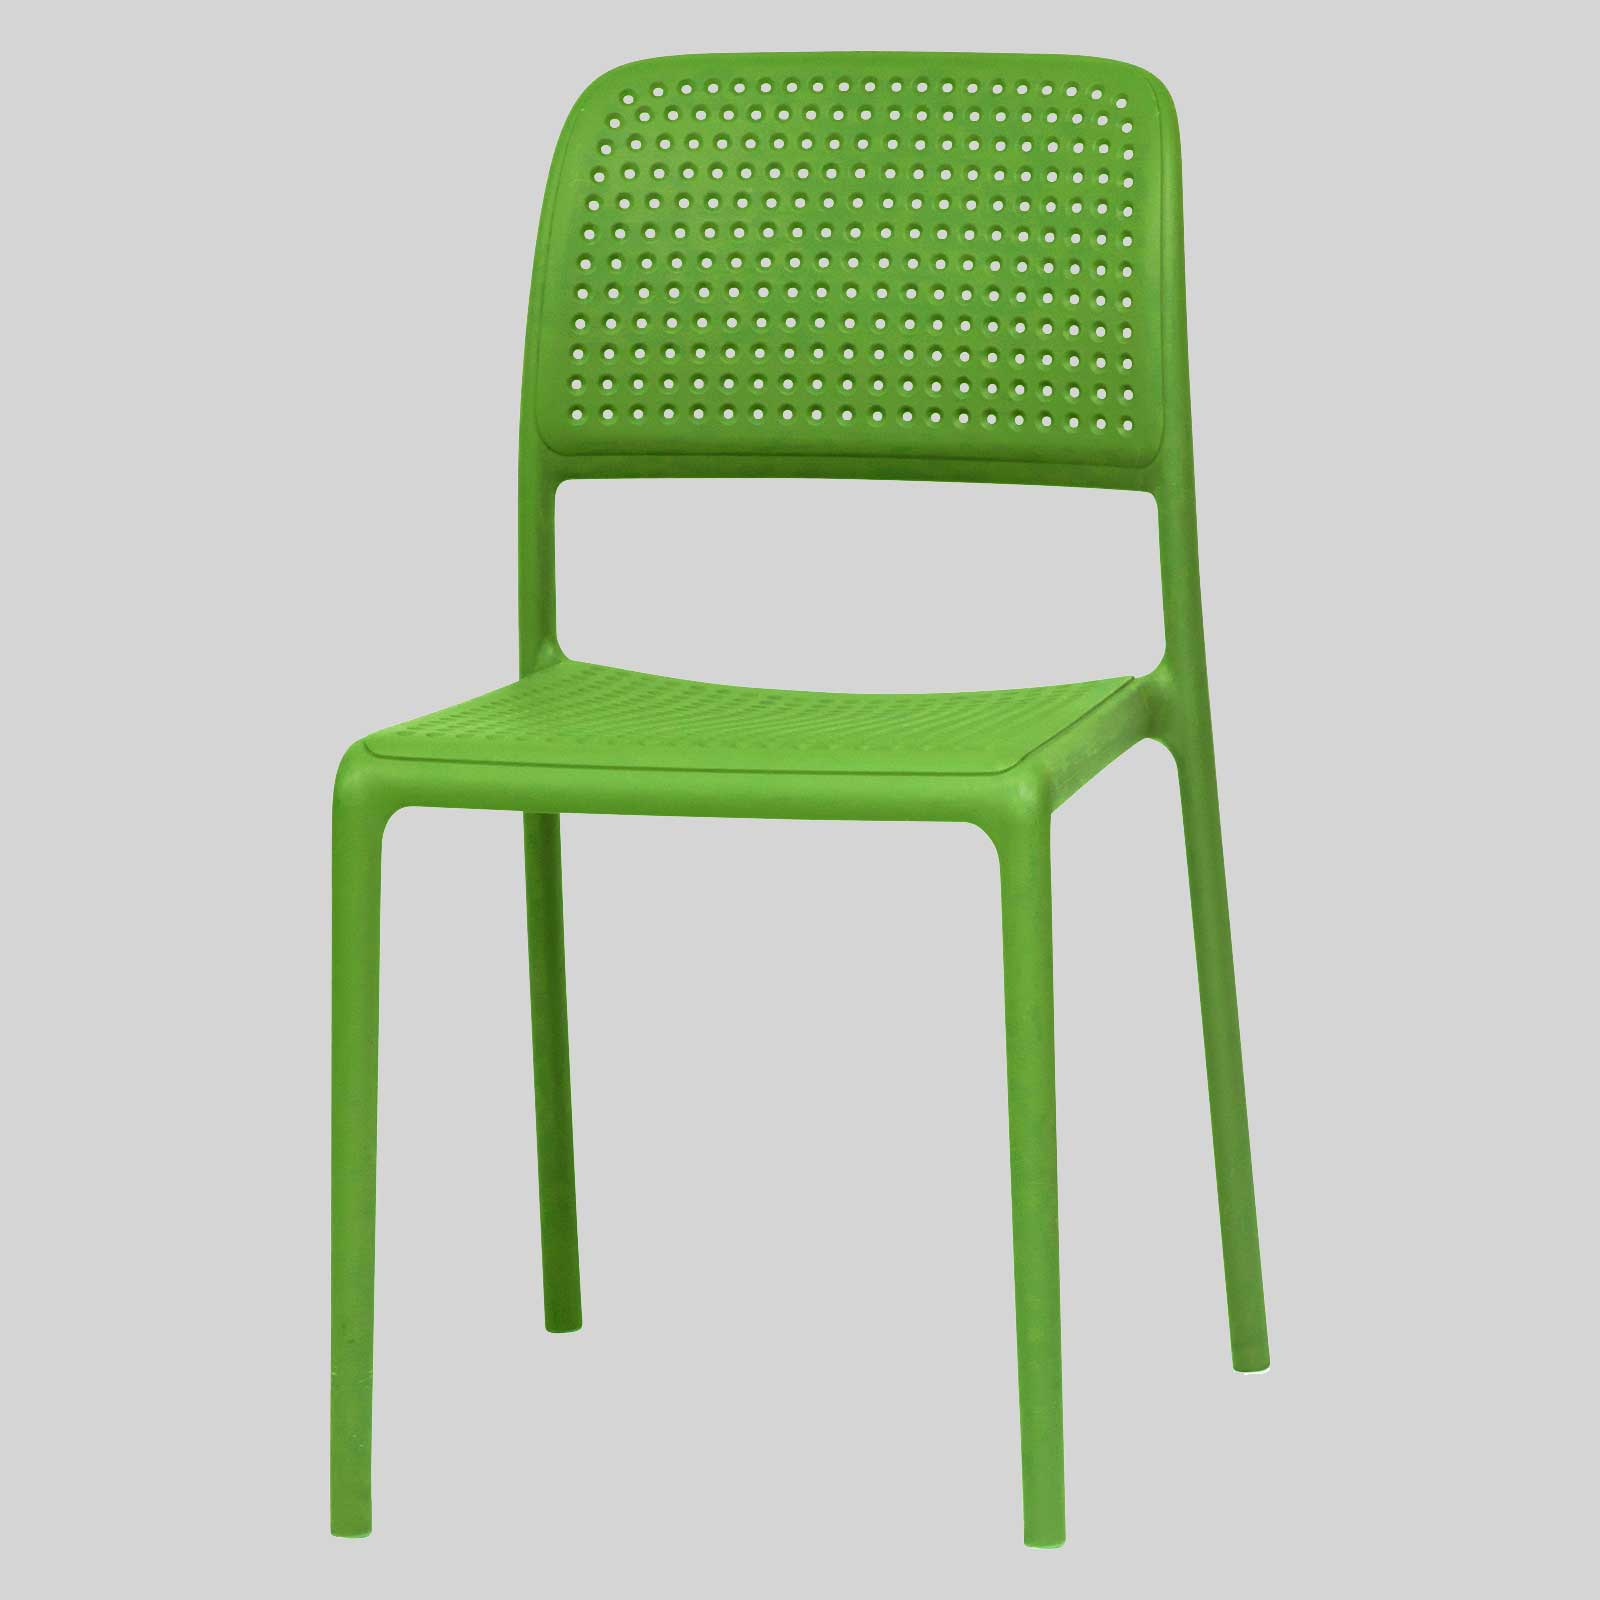 Green Patio Chairs Plastic Chairs For Outdoor Venues Dora Concept Collections